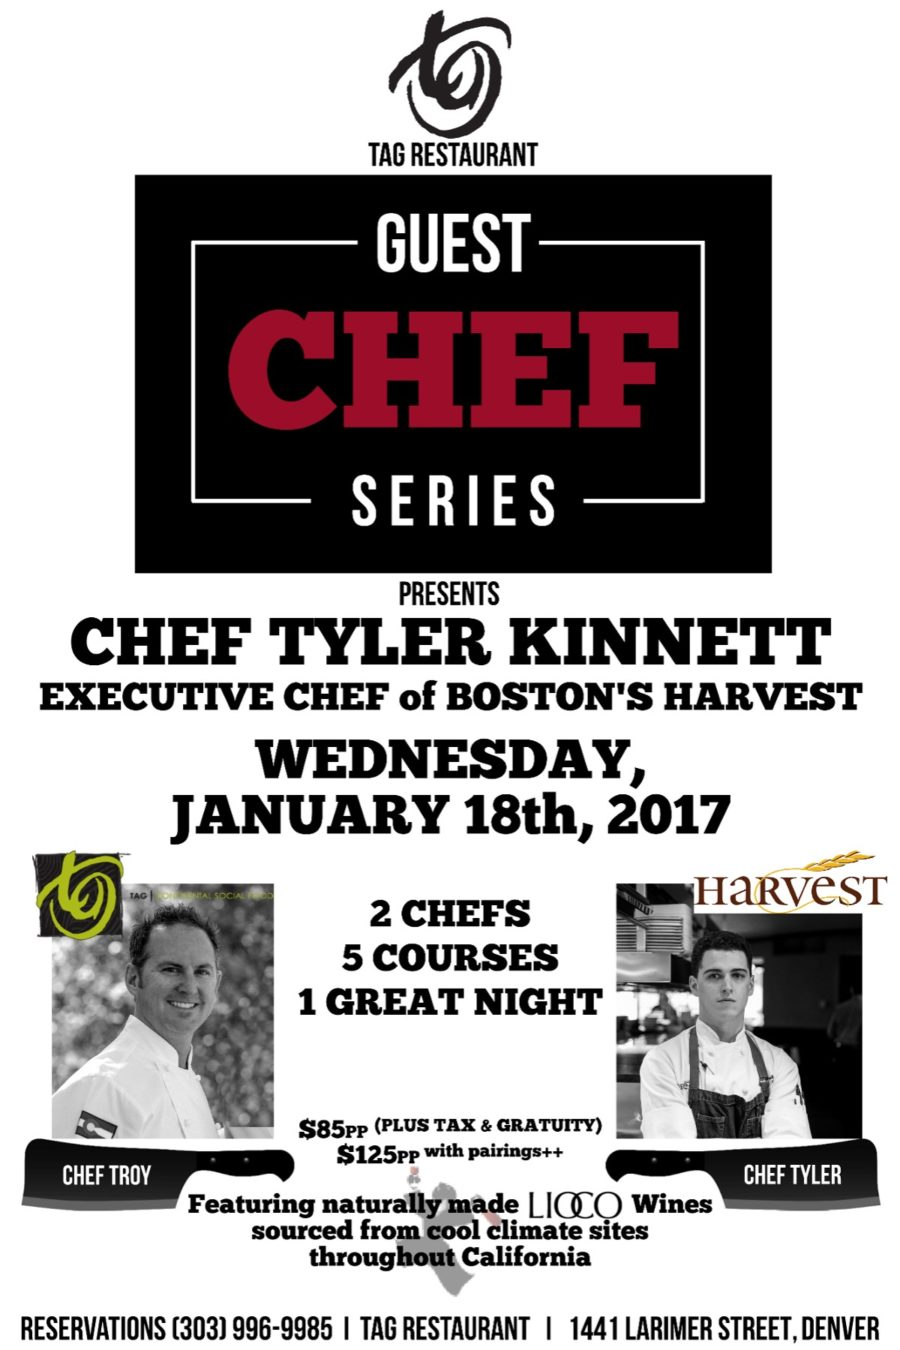 GUEST CHEF SERIES with Chef Tyler Kinnett